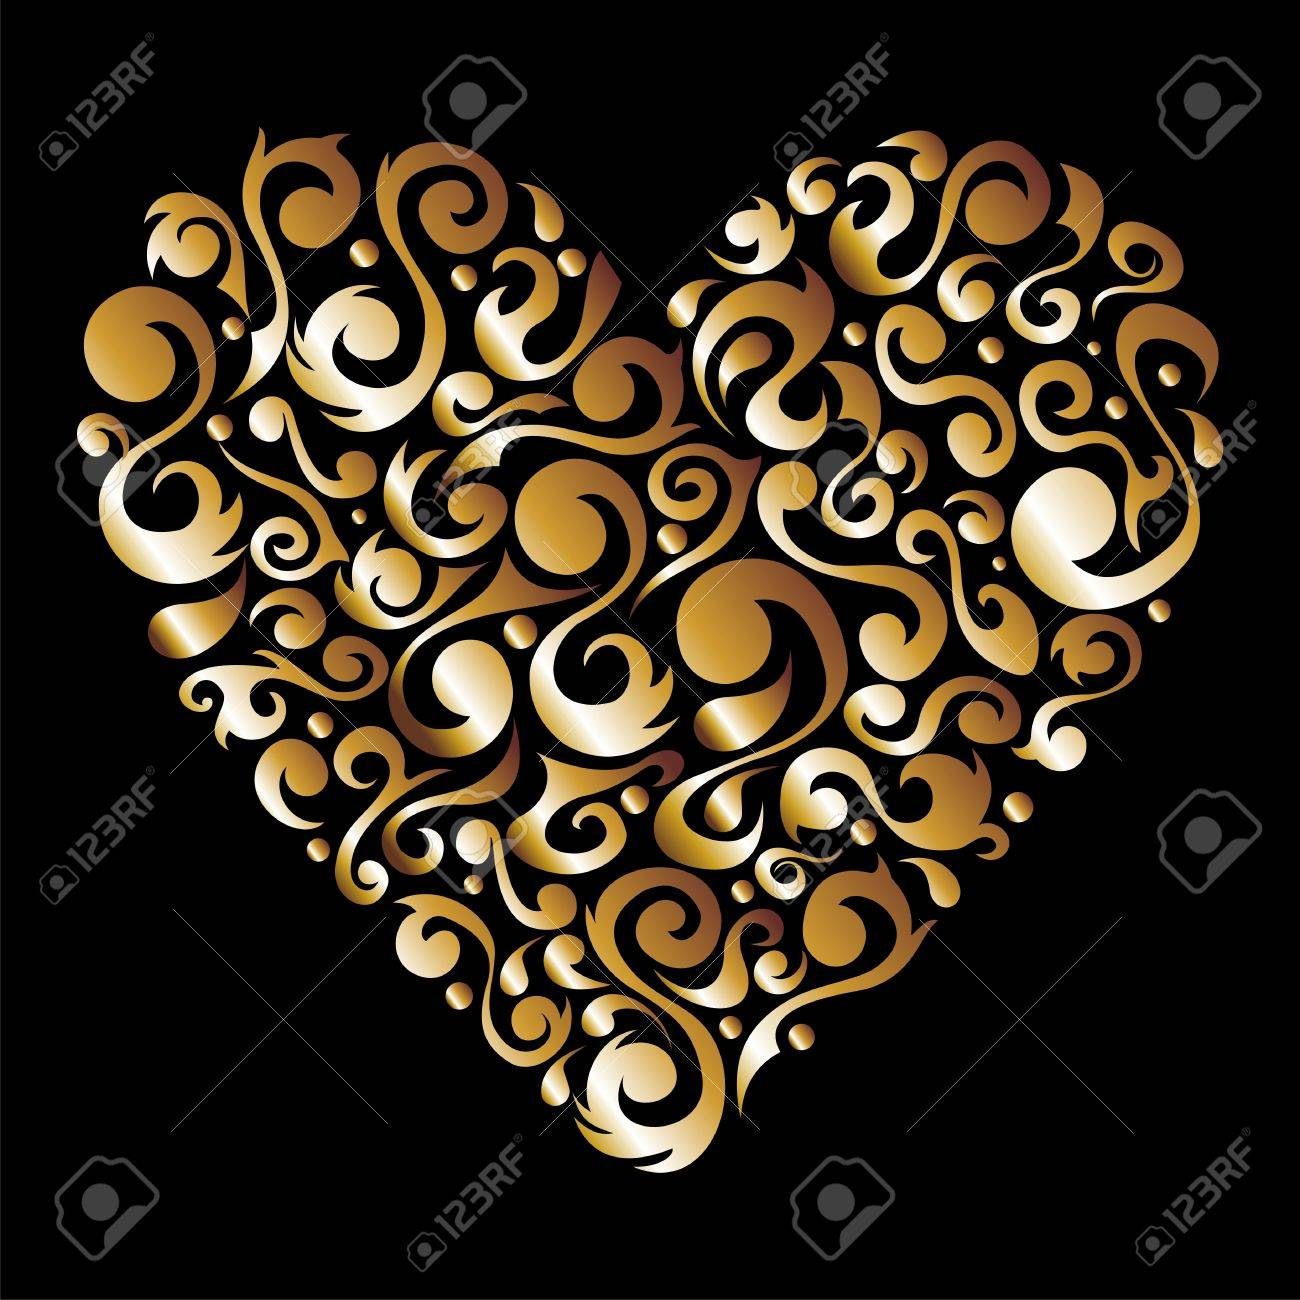 Golden love heart with floral design silhouette background.  file available. Stock Vector - 12038173